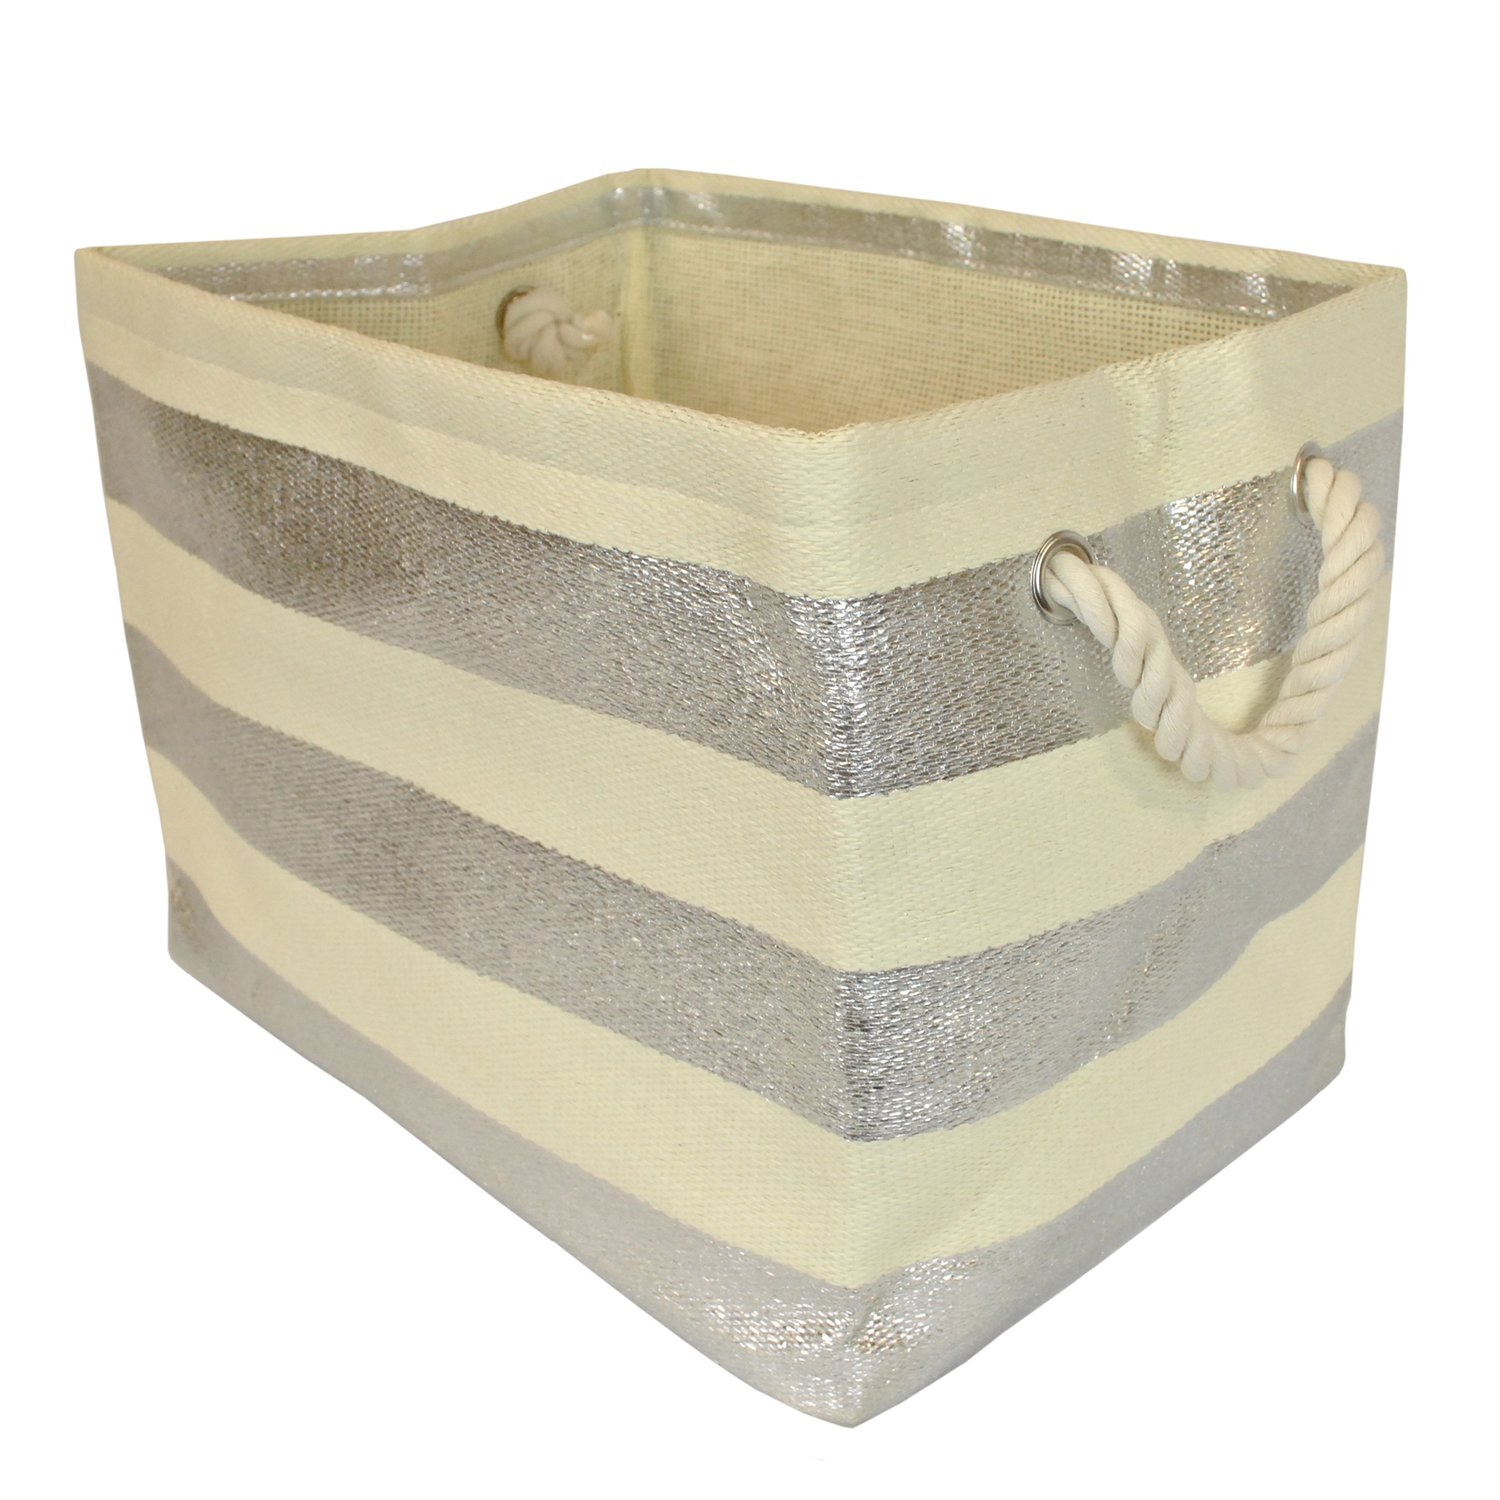 DII Woven Paper Storage Basket or Bin, Collapsible & Convenient Home Organization Solution for Office, Bedroom, Closet, Toys, Laundry (Small - 11x10x9�), Silver Rugby Stripe